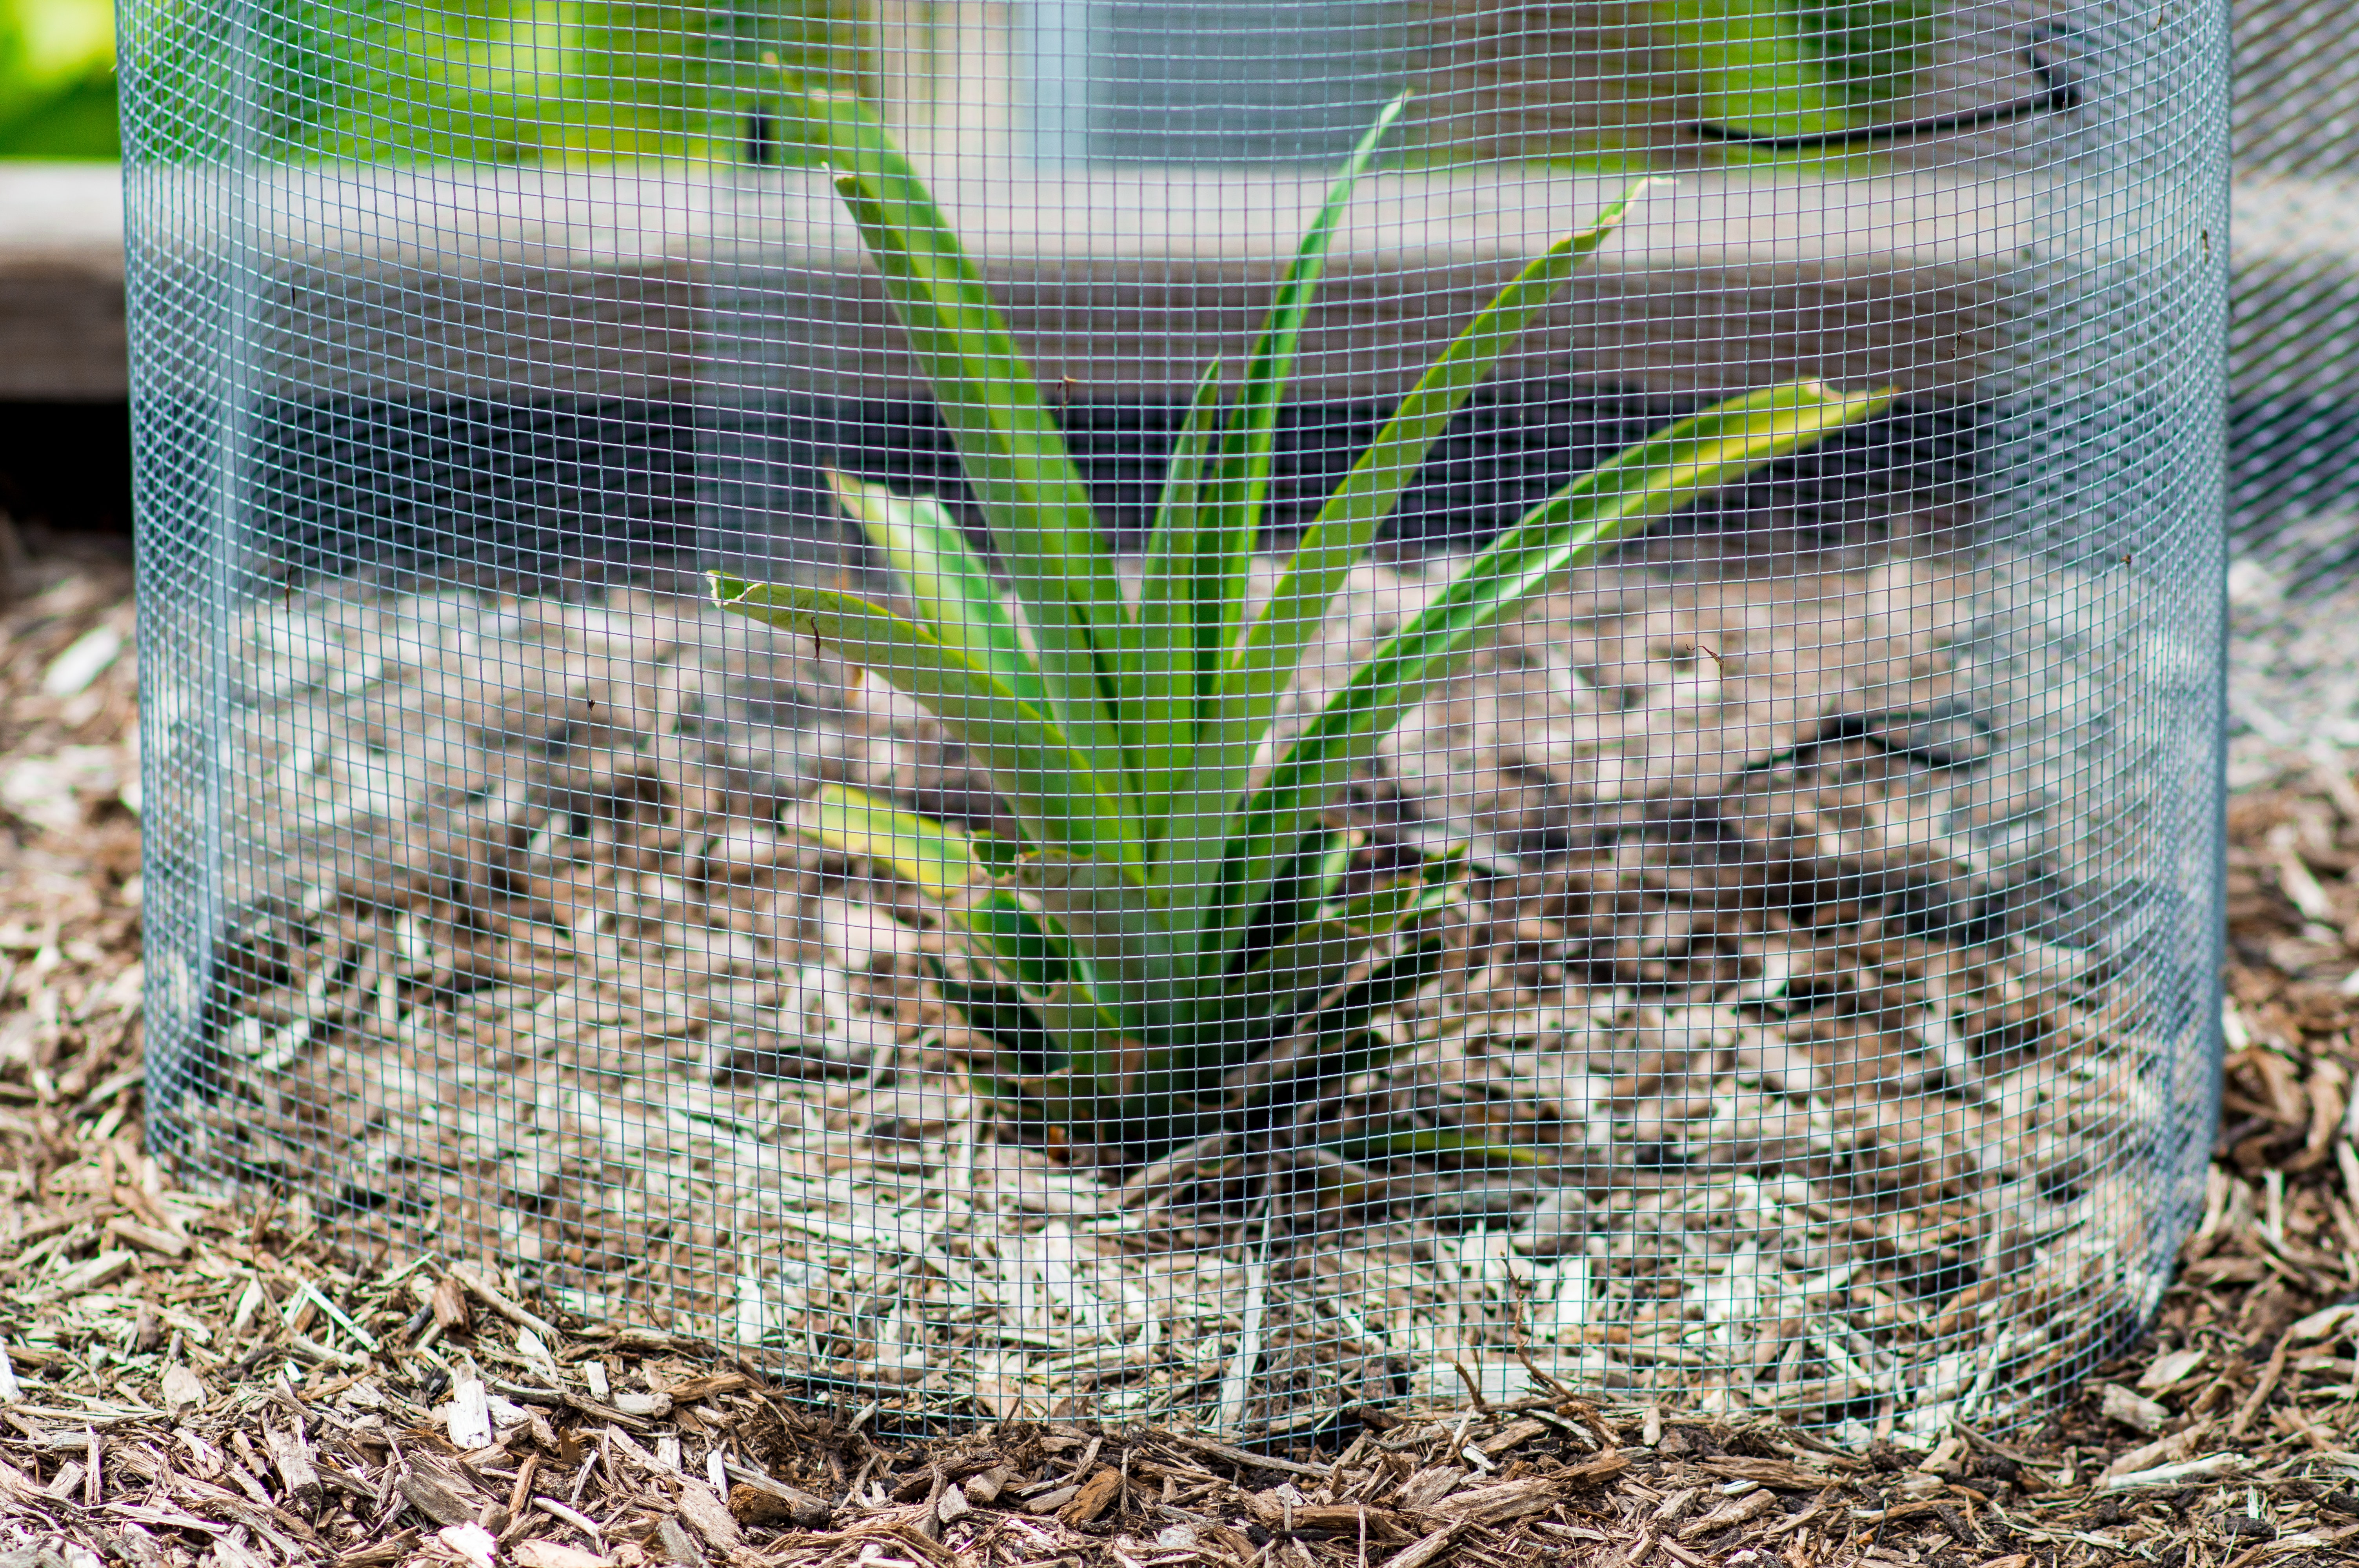 green palm plant with net